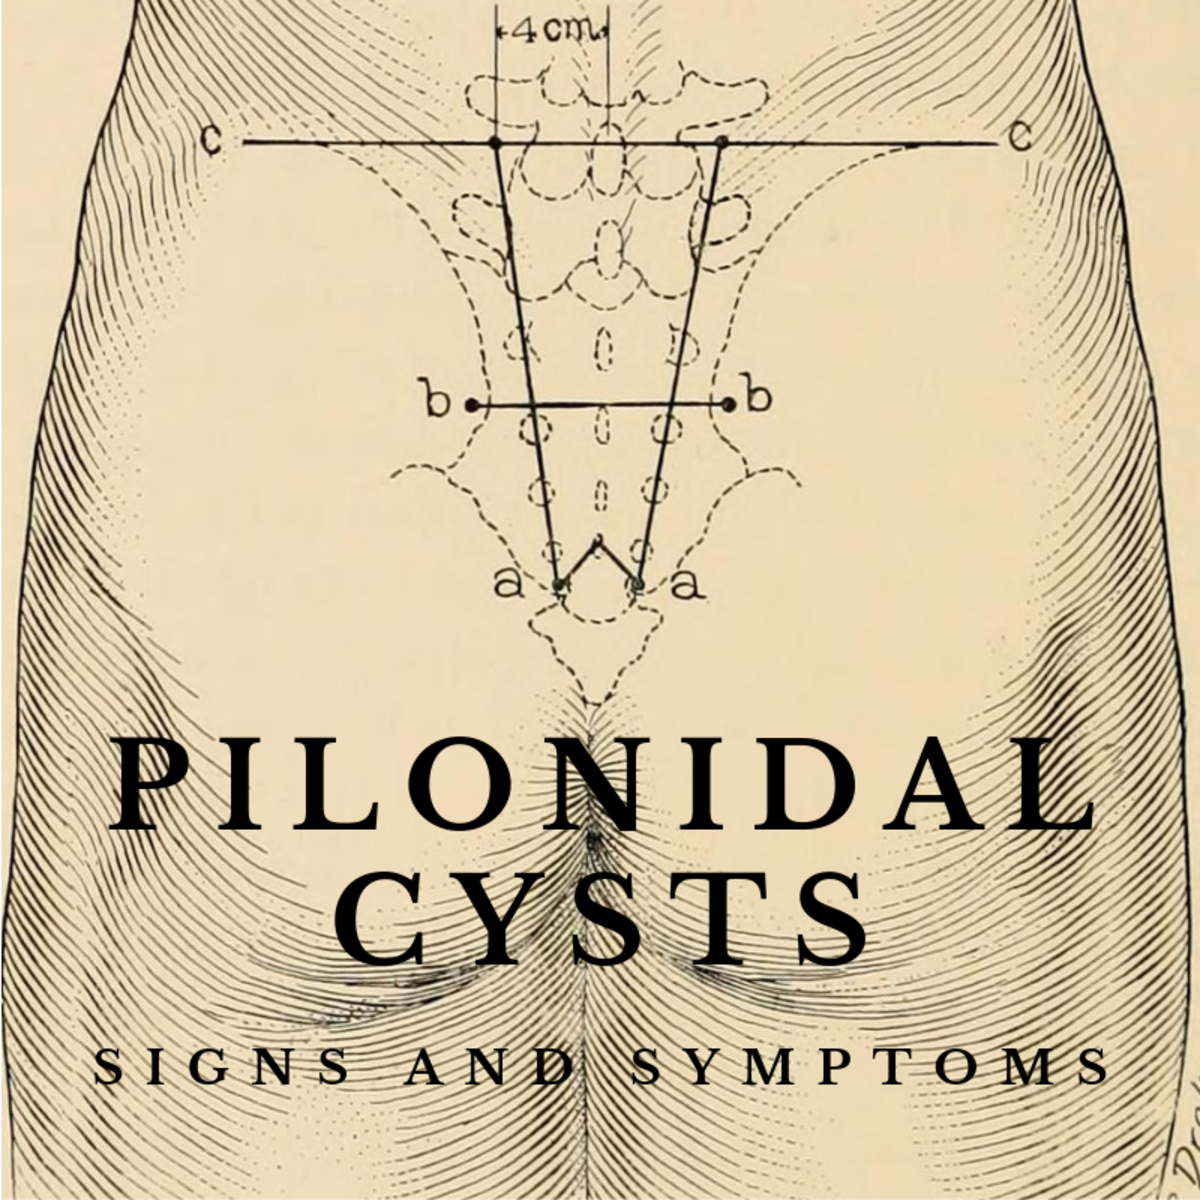 Pilonidal cysts are painful when left untreated. Find out what to look for.